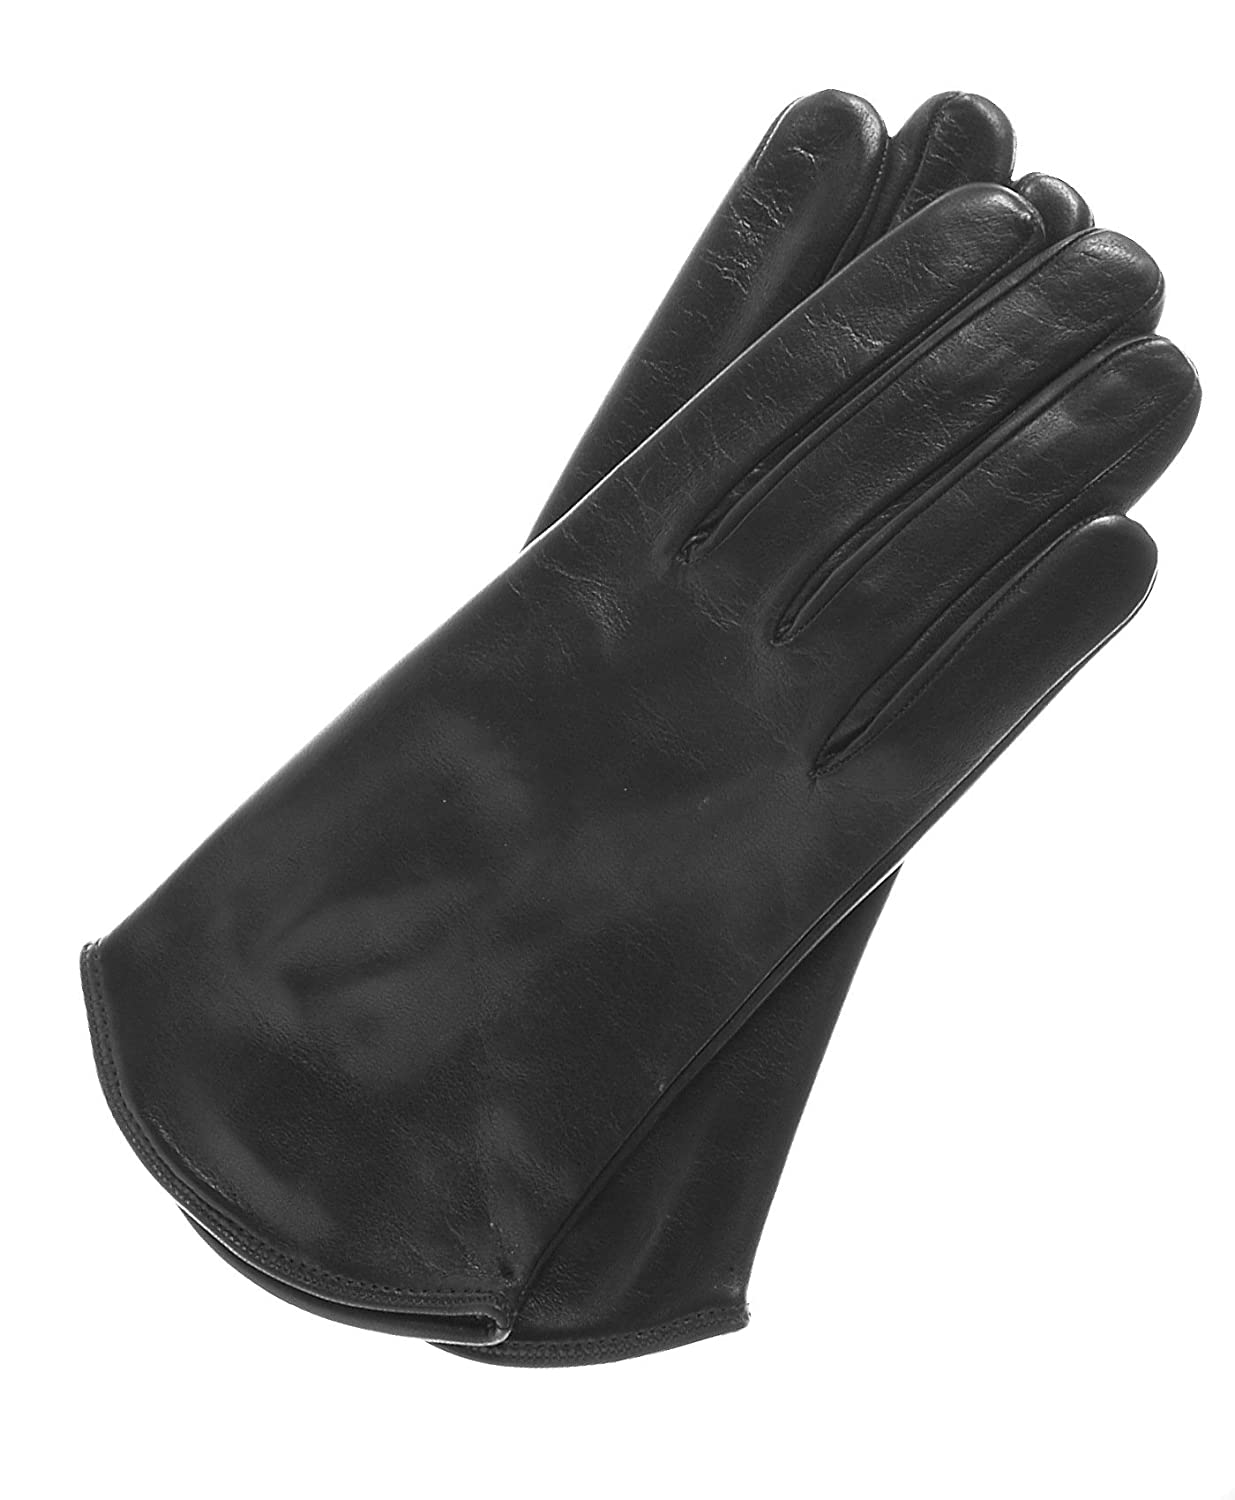 Leather gloves for women with additional detailing add a touch of personality. For cozy warmth and a touch of flair, choose faux fur cuff gloves. Embossed leather .